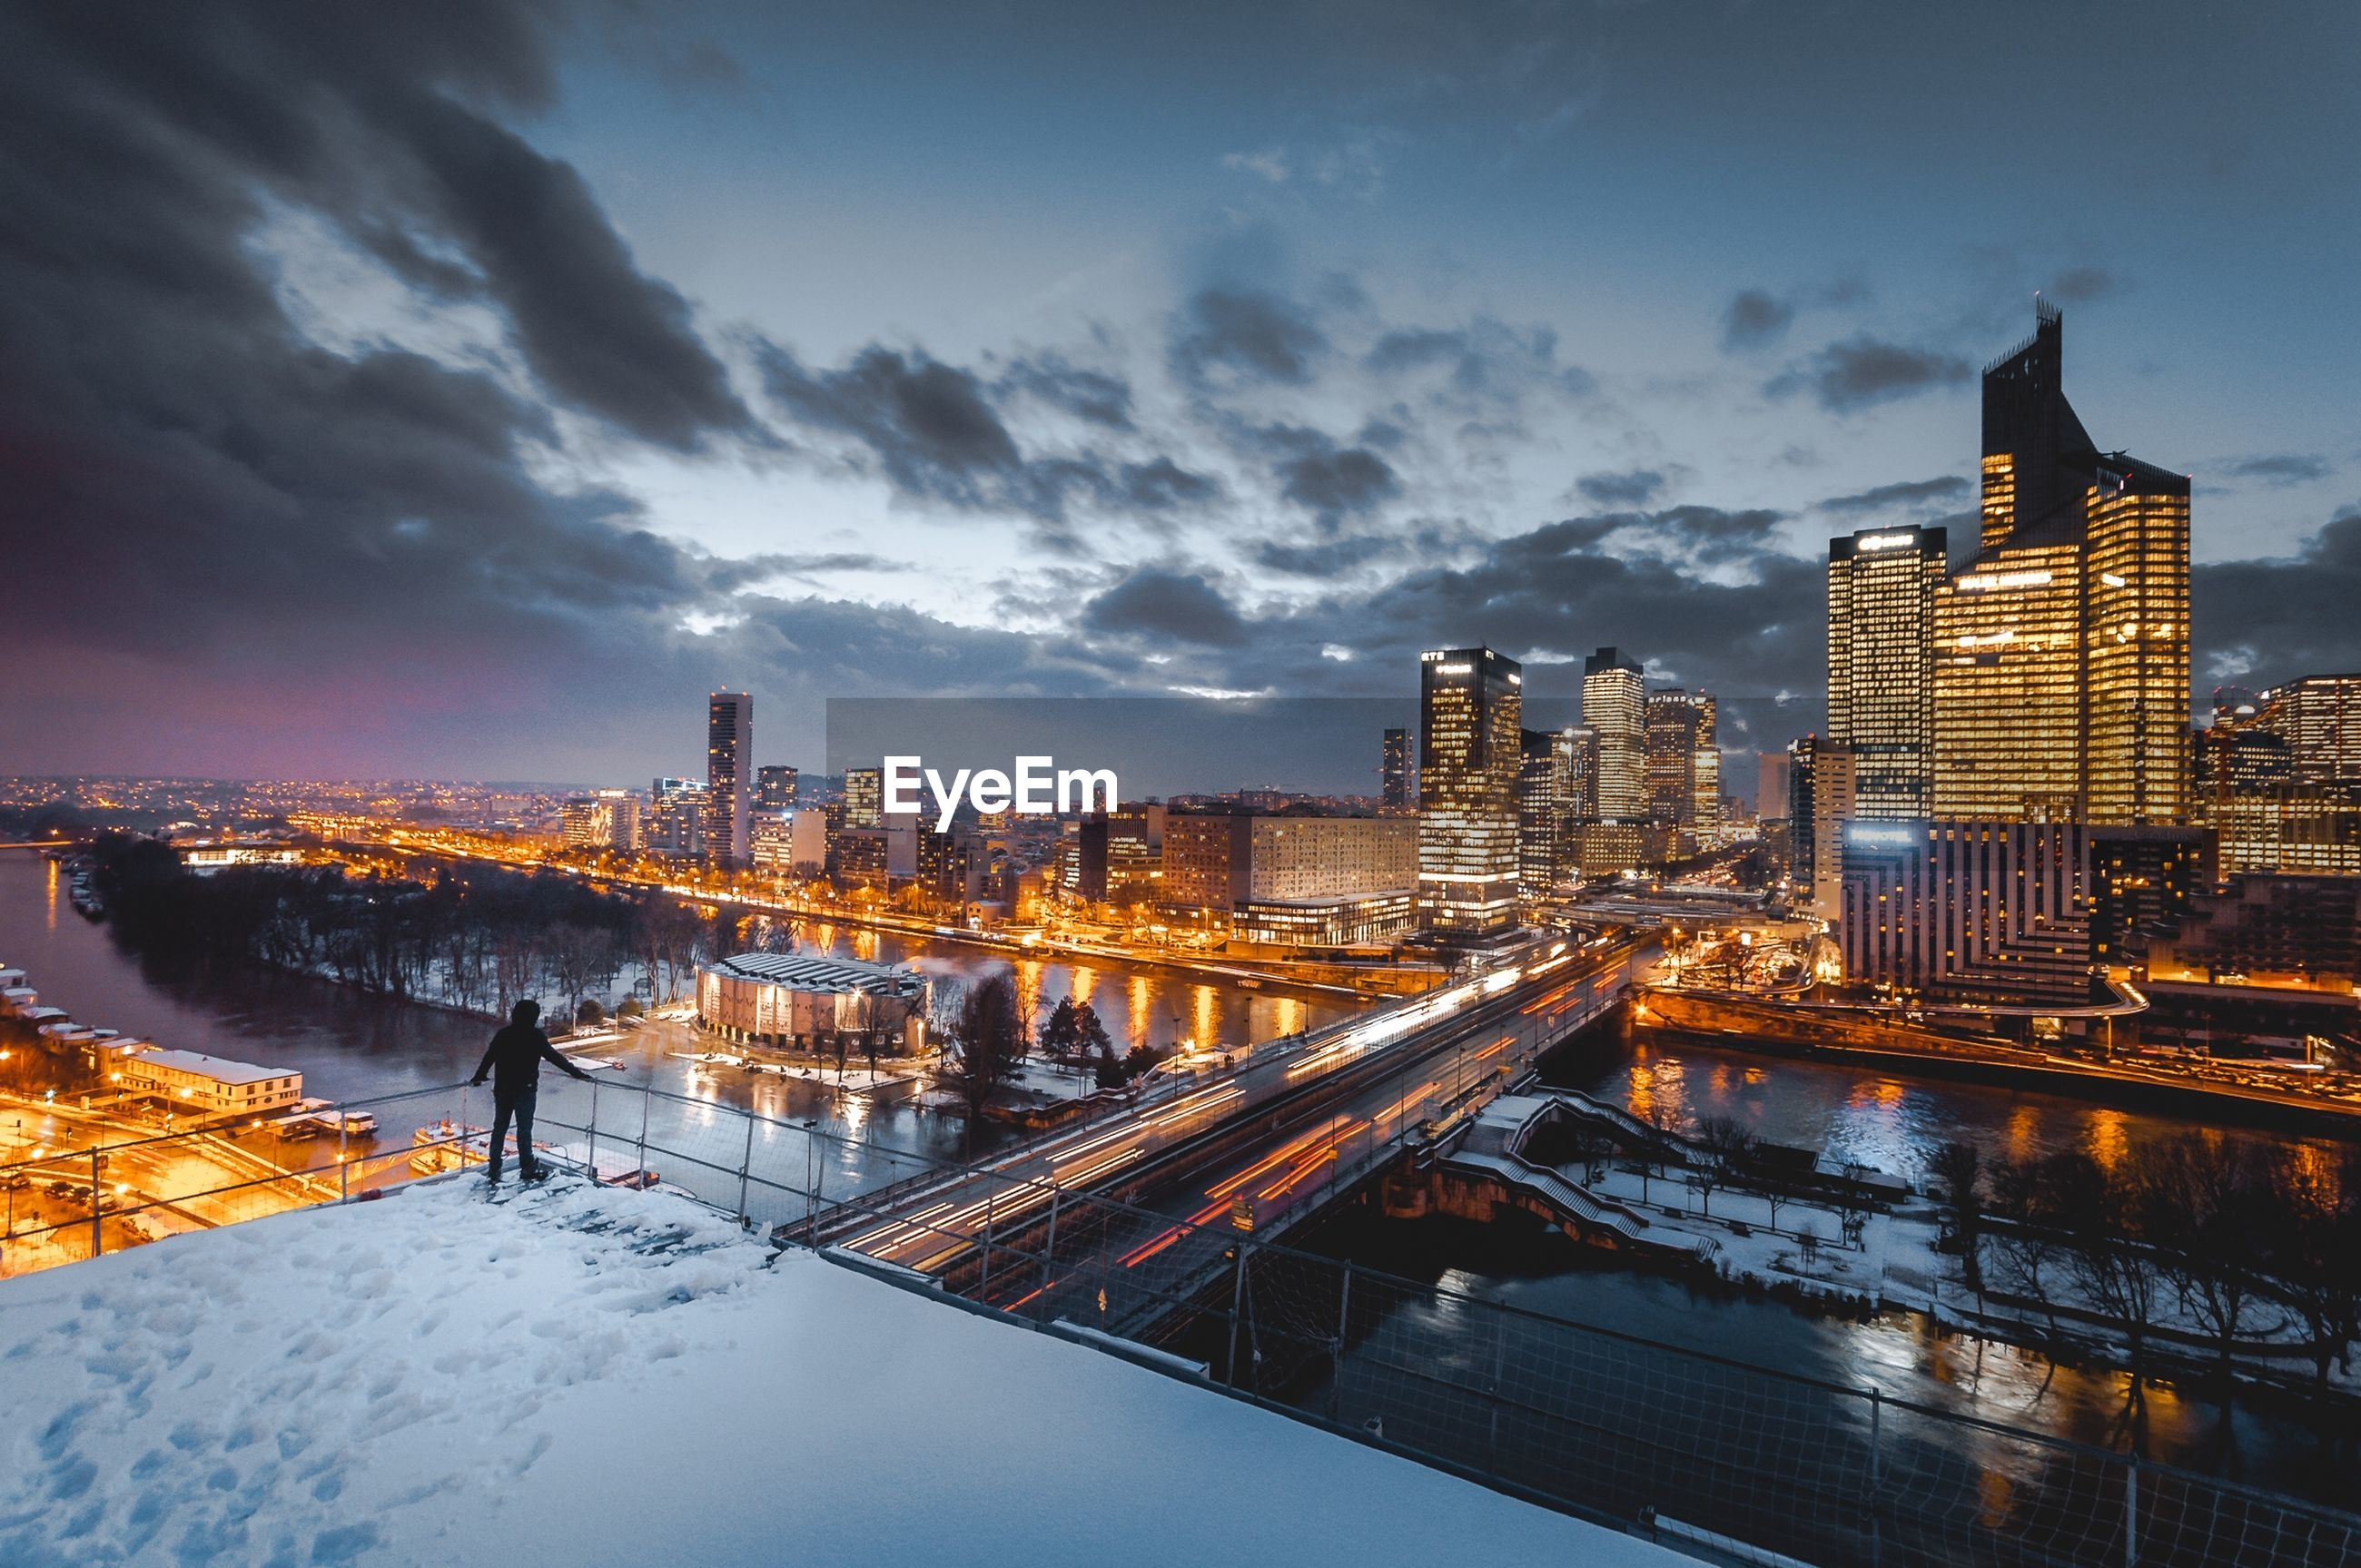 architecture, building exterior, built structure, city, skyscraper, cityscape, sky, tower, cloud - sky, illuminated, cold temperature, travel destinations, city life, snow, outdoors, modern, no people, winter, urban skyline, tall, nature, night, water